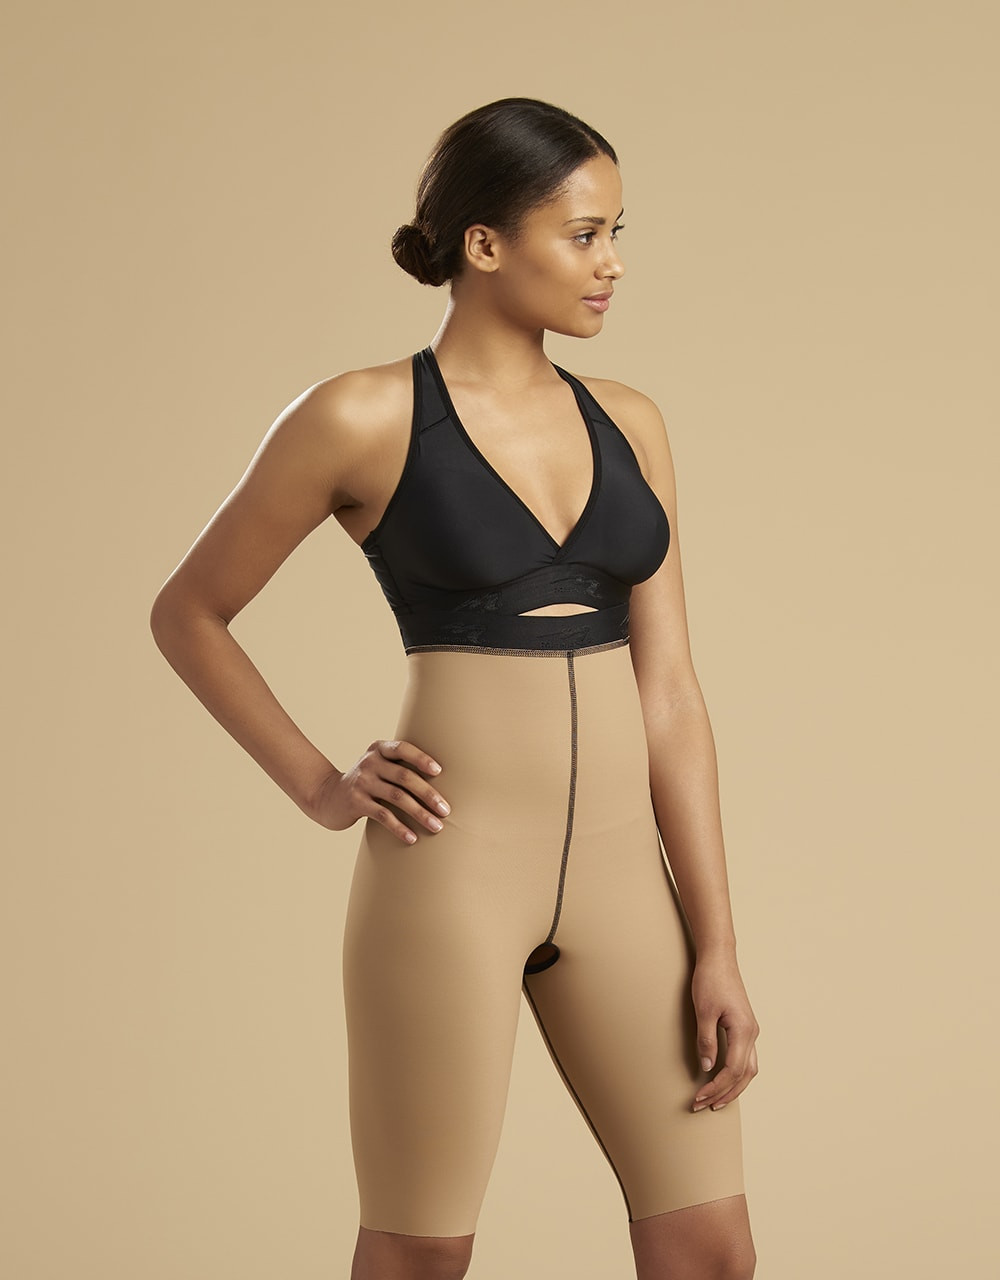 4318082b94 Marena Recovery LGS2 thigh-length compression girdle zipperless